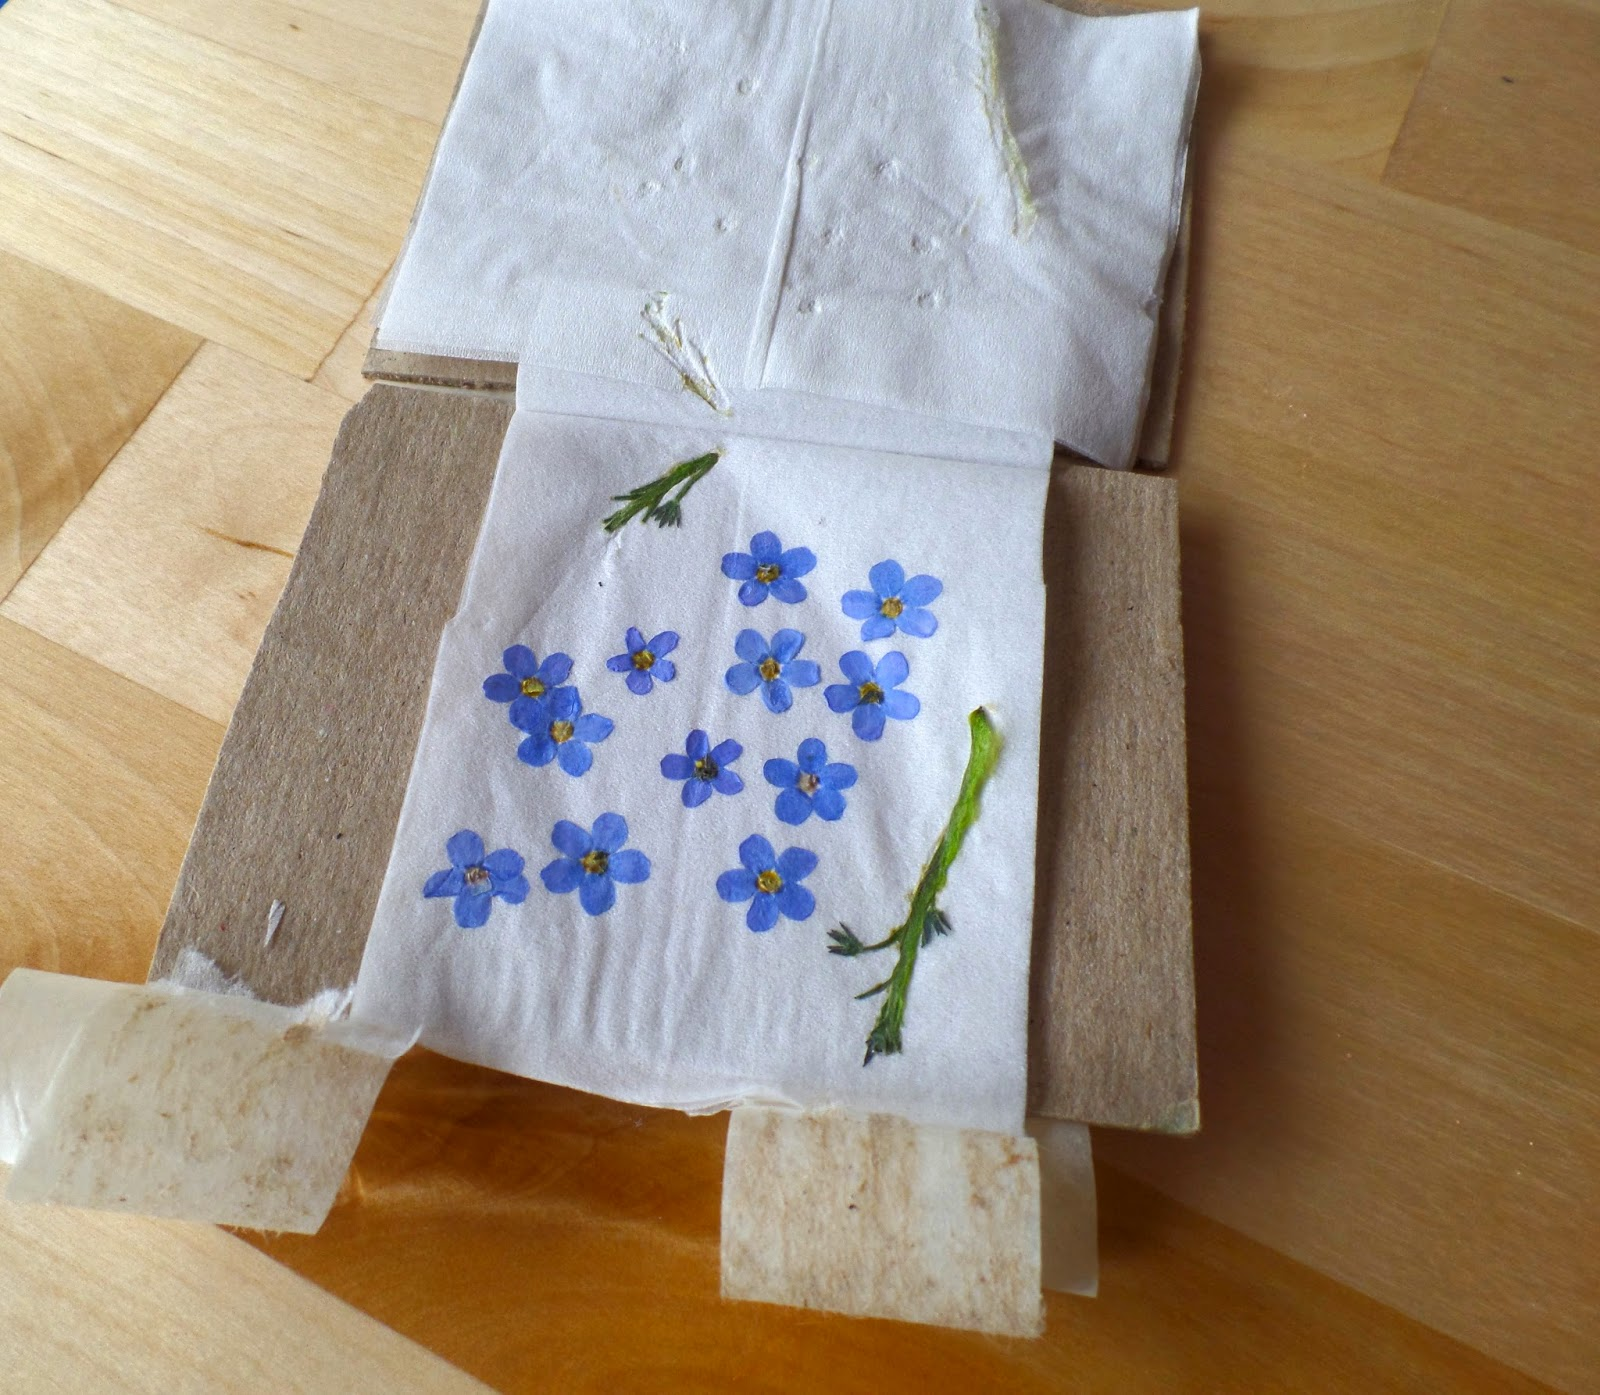 dried forget-me-knot flowers